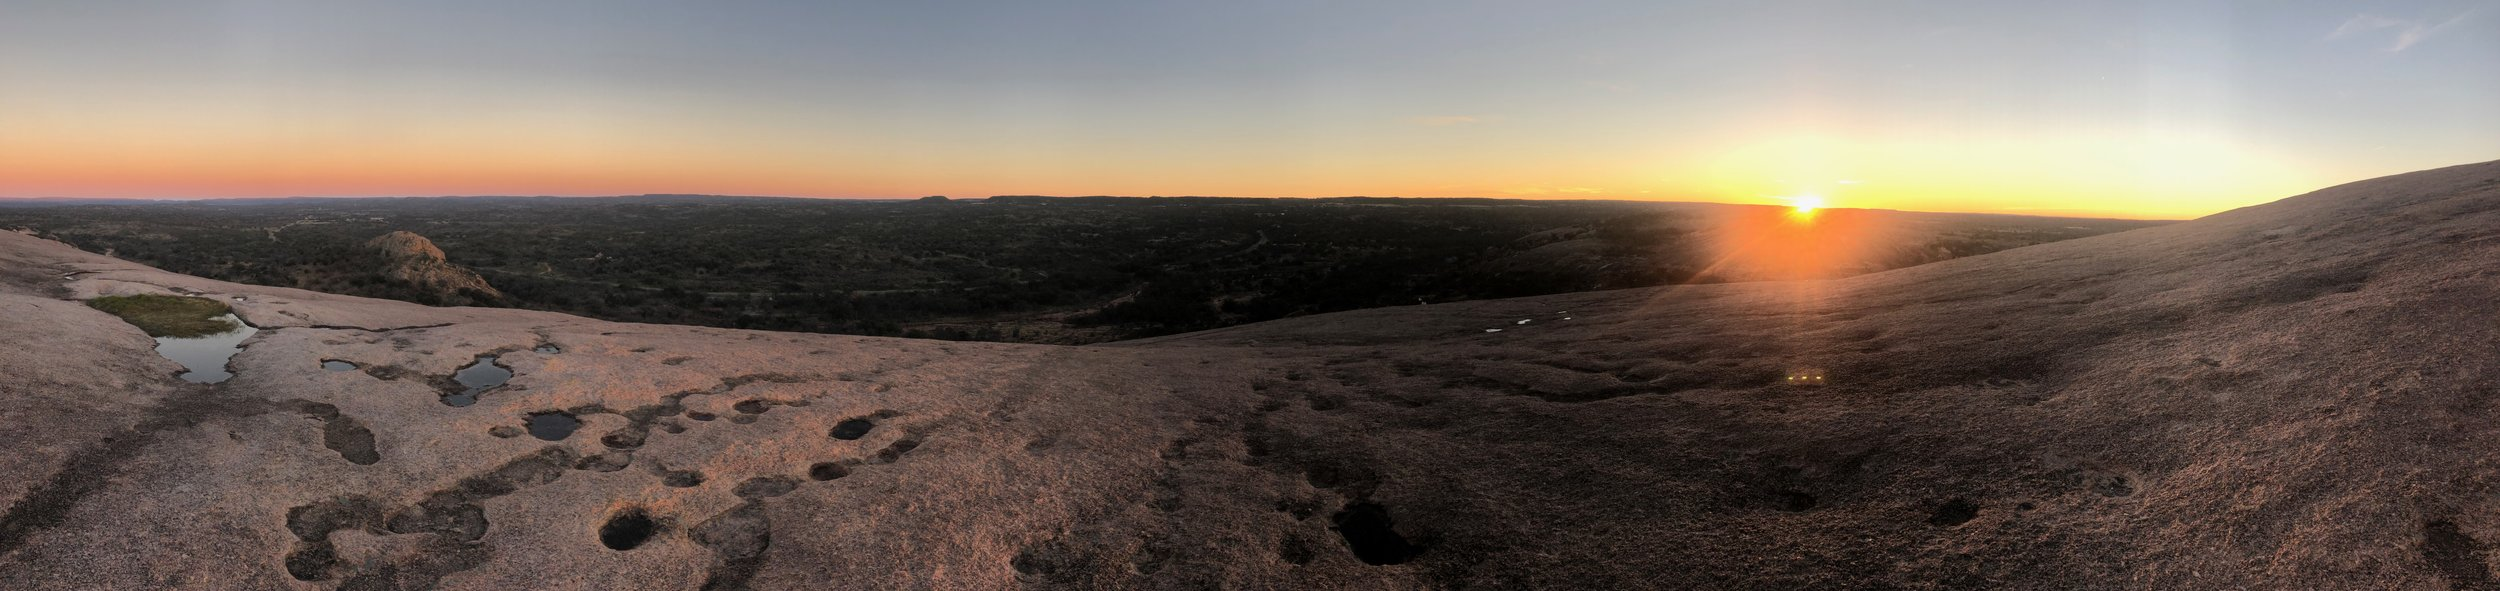 Sunset at Enchanted Rock - Texas Hill Country 2019